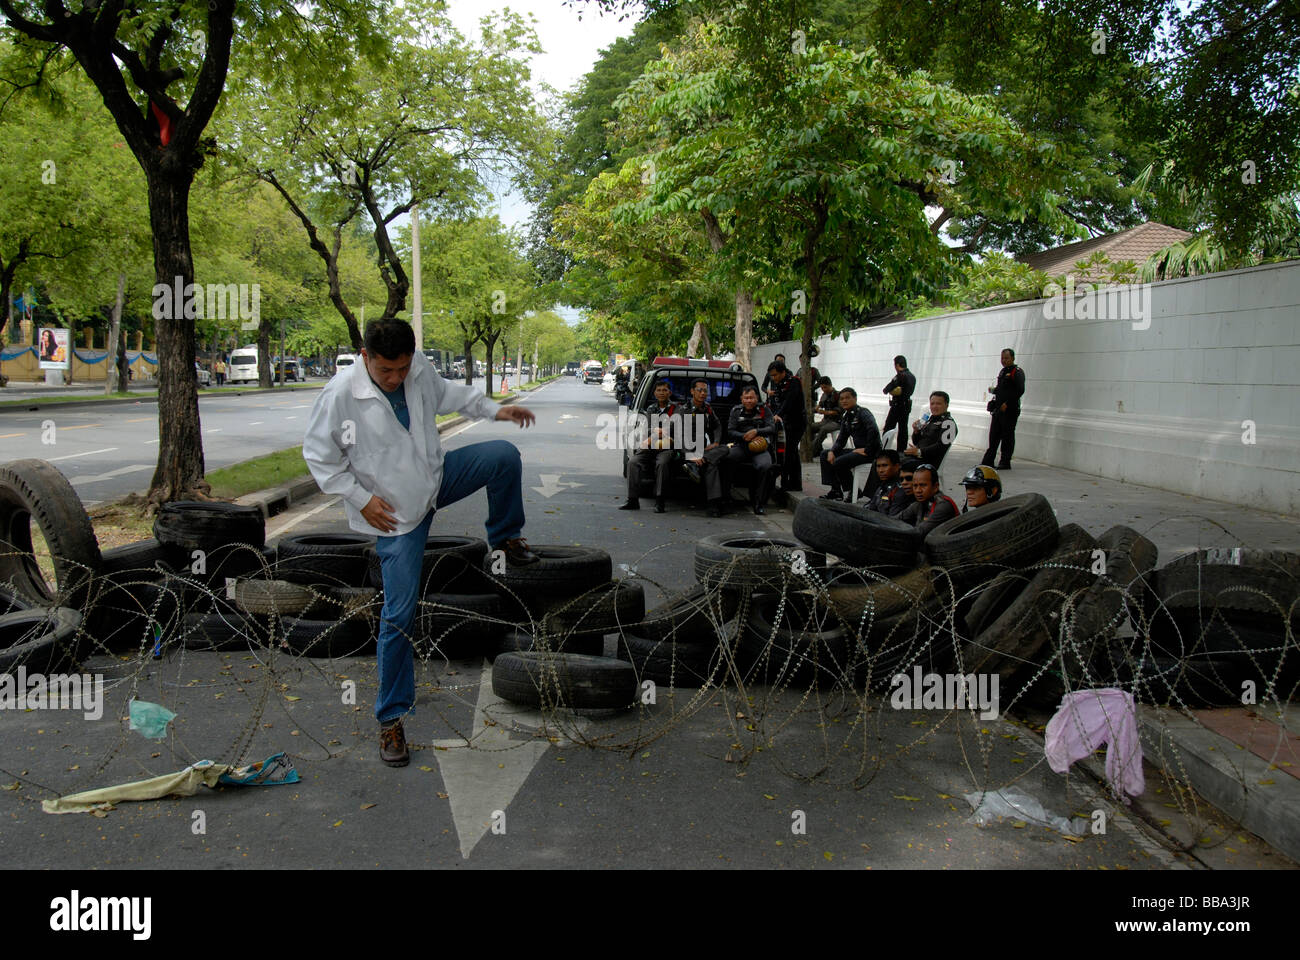 Demonstration, man overcoming barbed wire and car tires roadblock, police watching interestedly, Bangkok, Thailand, - Stock Image